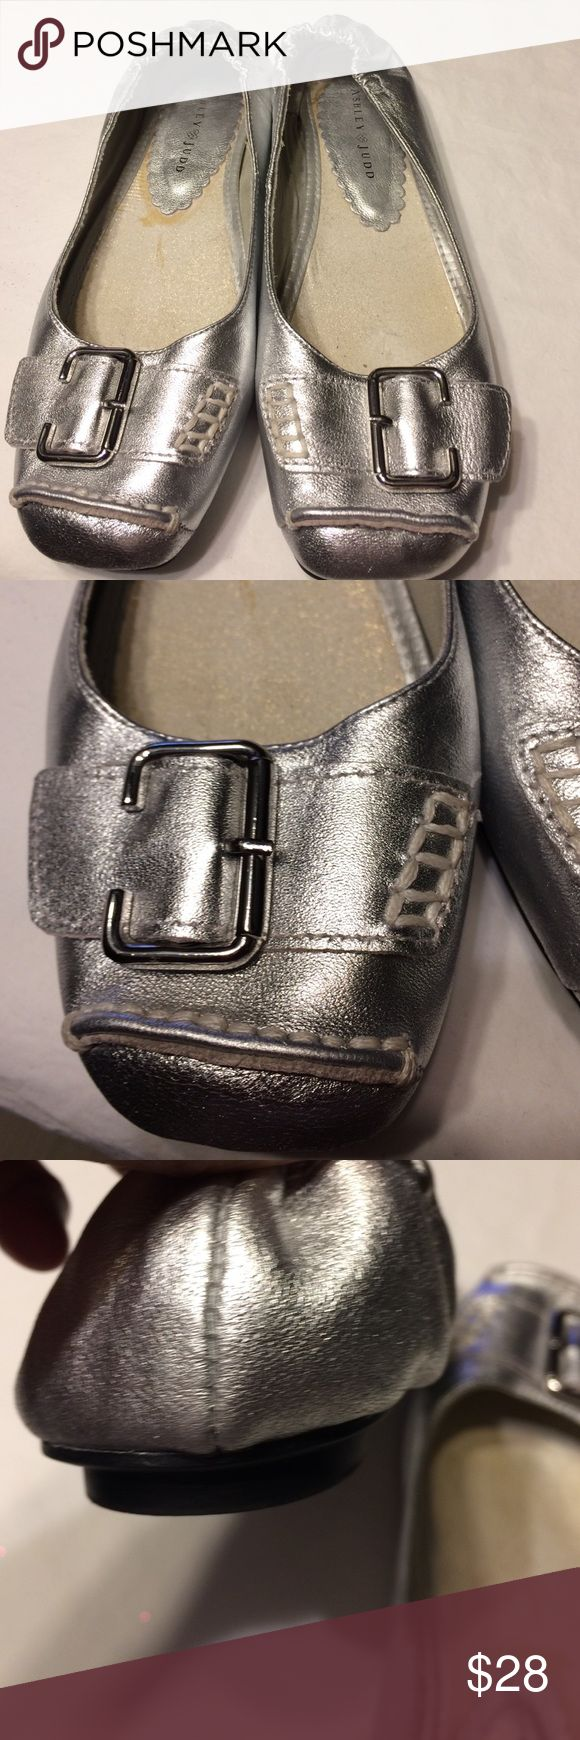 Ashley Judd great flats! Silver slippers Wow Ashley Judd Shoes Flats & Loafers